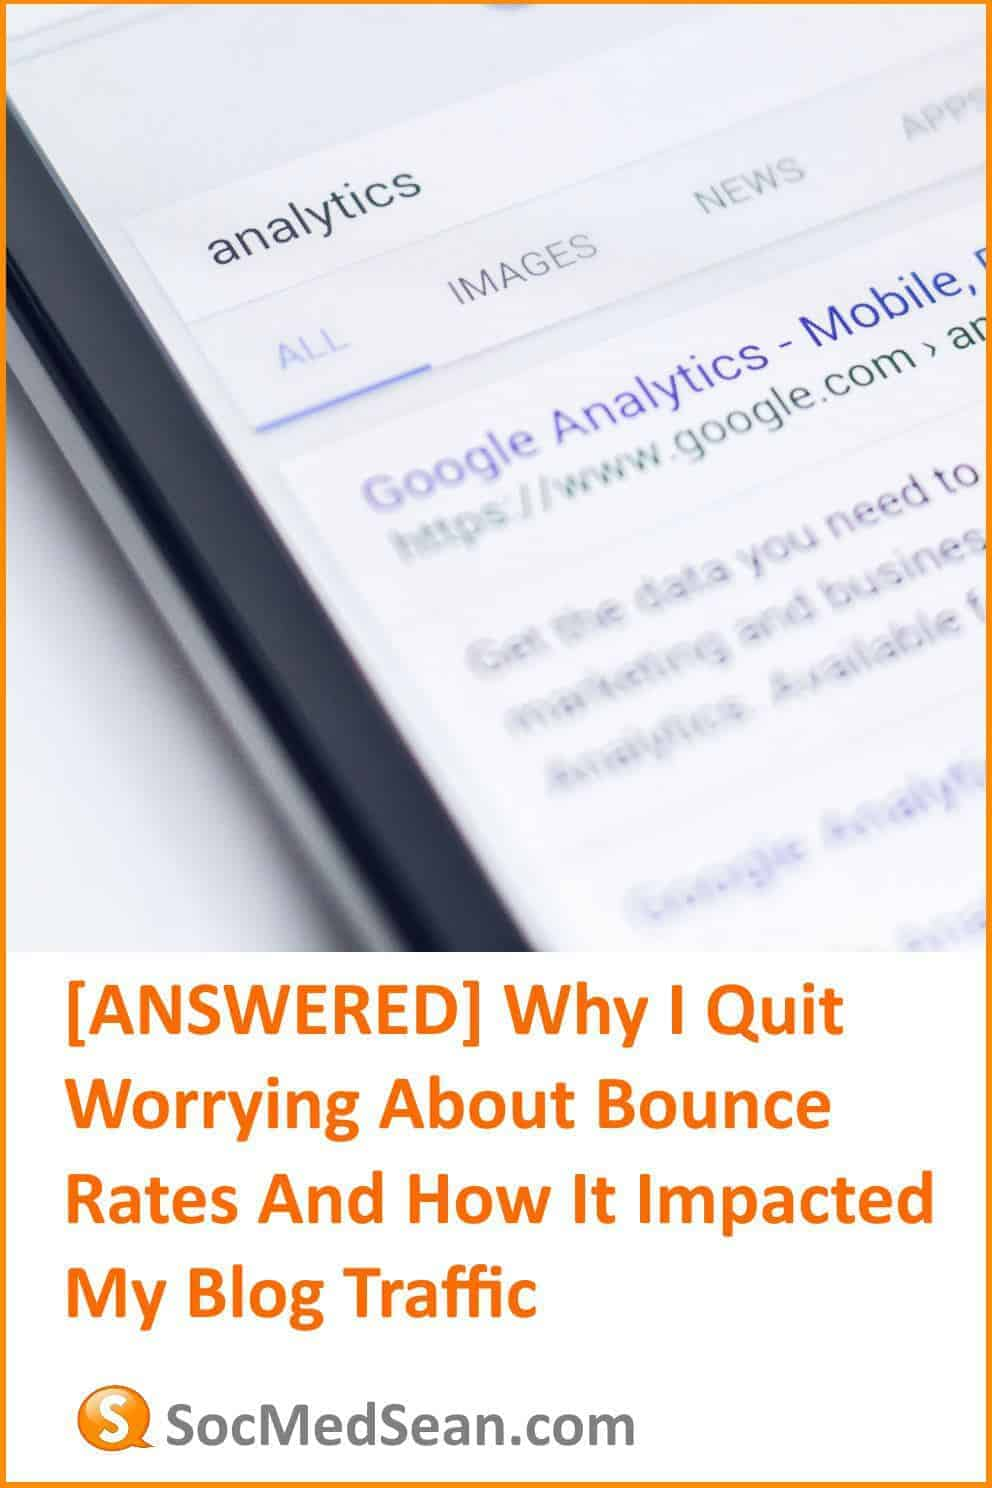 Why I quit worrying about my blog article and post bounce rate